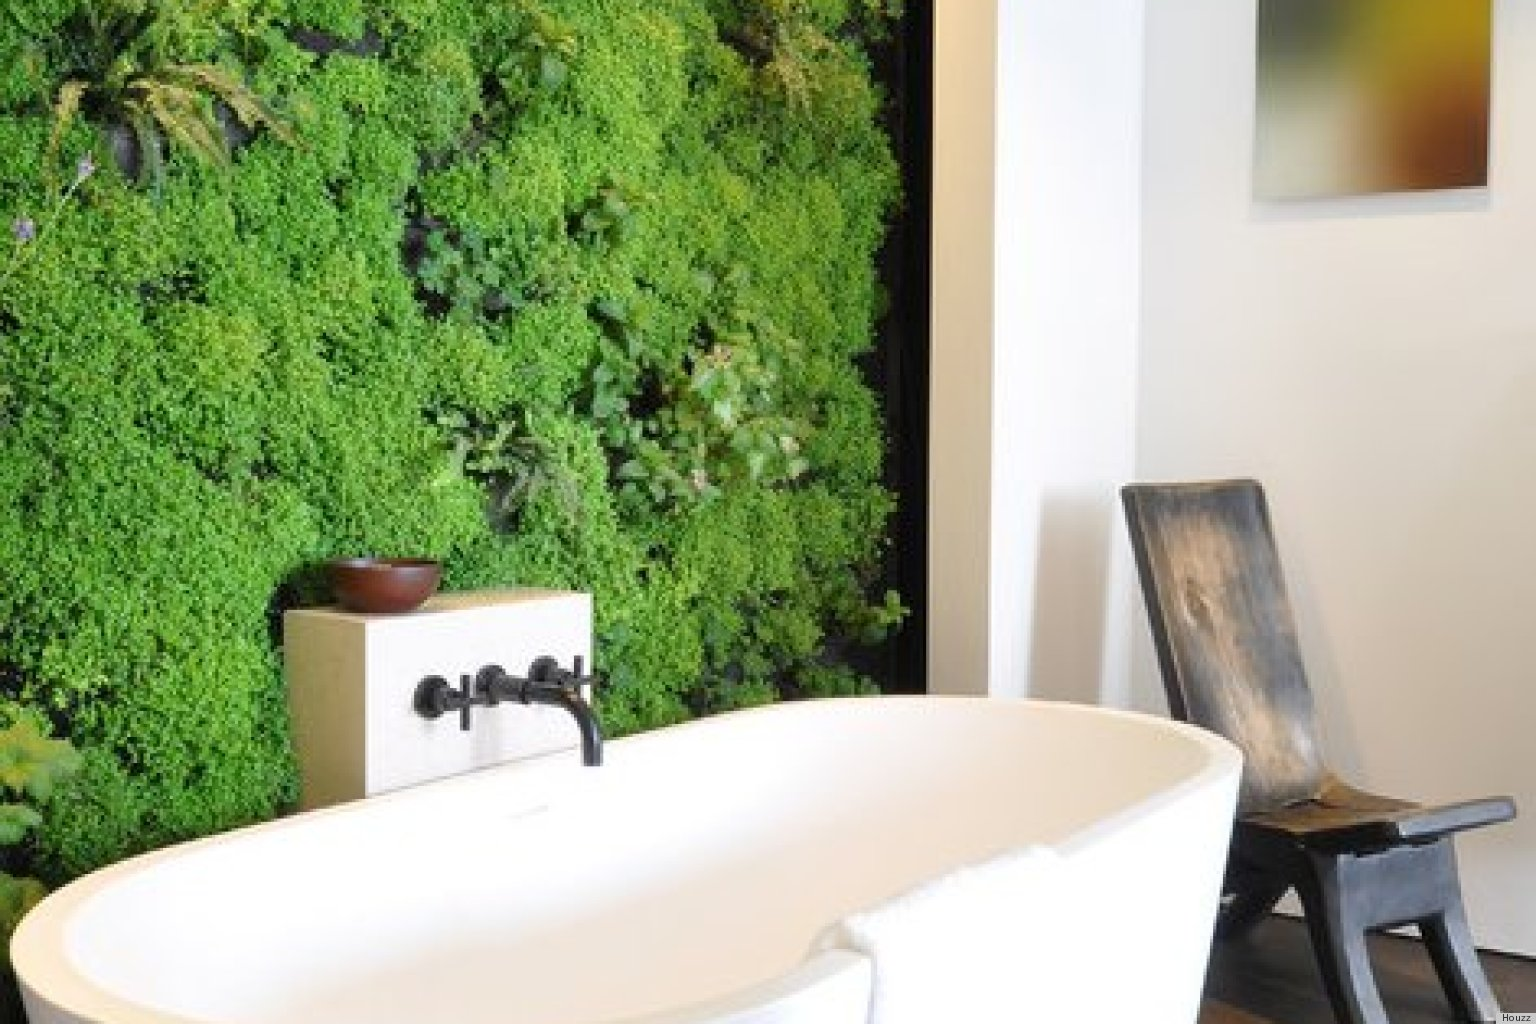 10 Indoor Vertical Gardens That Make Potted Plants Look Old School (PHOTOS)  | HuffPost